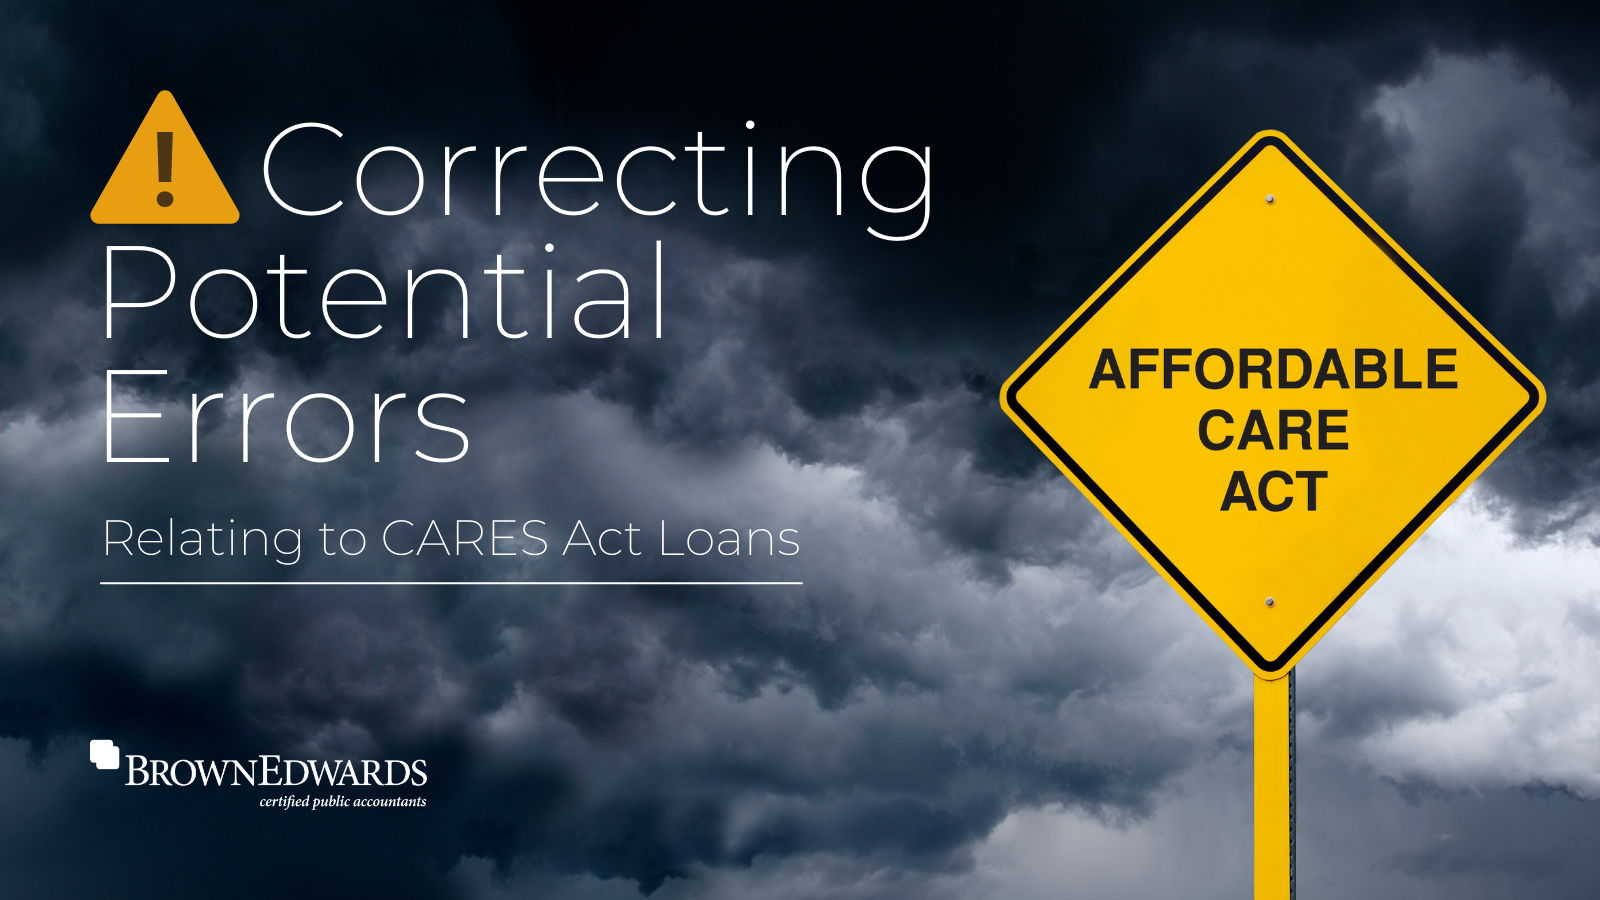 Correcting Potential Errors Relating to CARES Act Loans